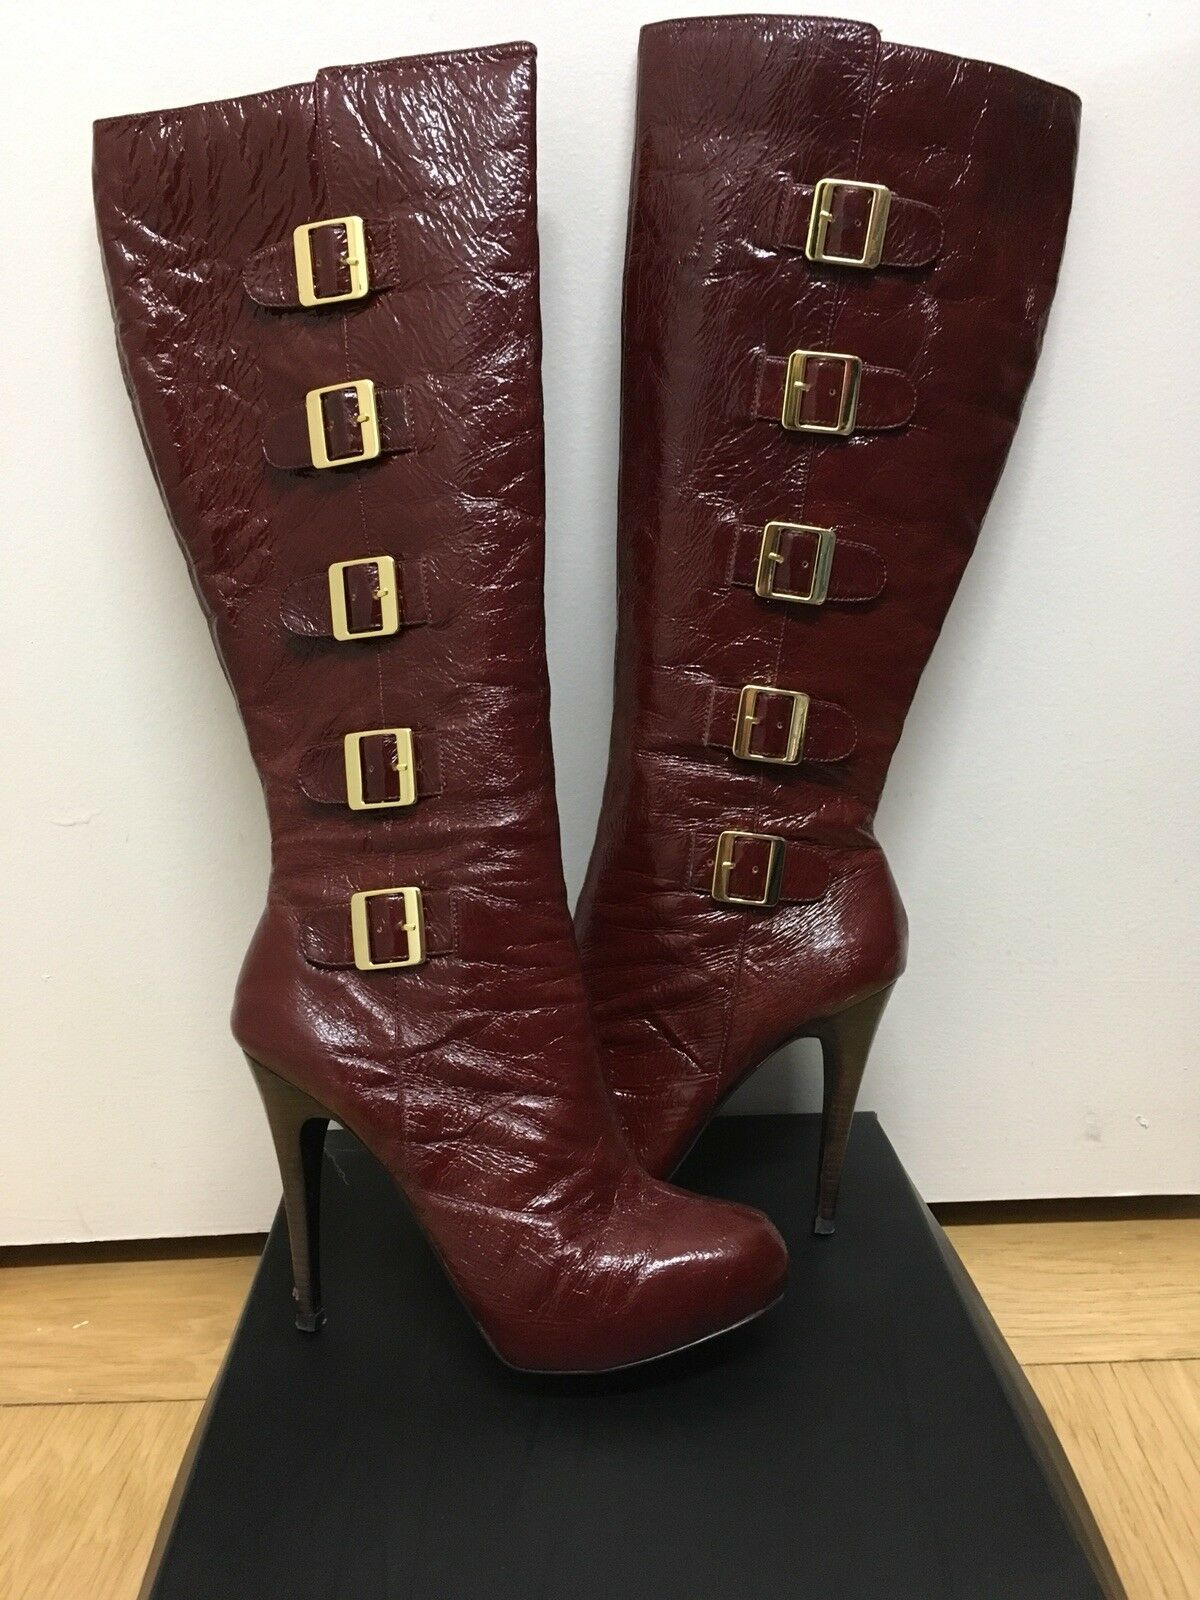 Sole Project By Bakers Burgundy Knee High Leather Boots, Size 7.5